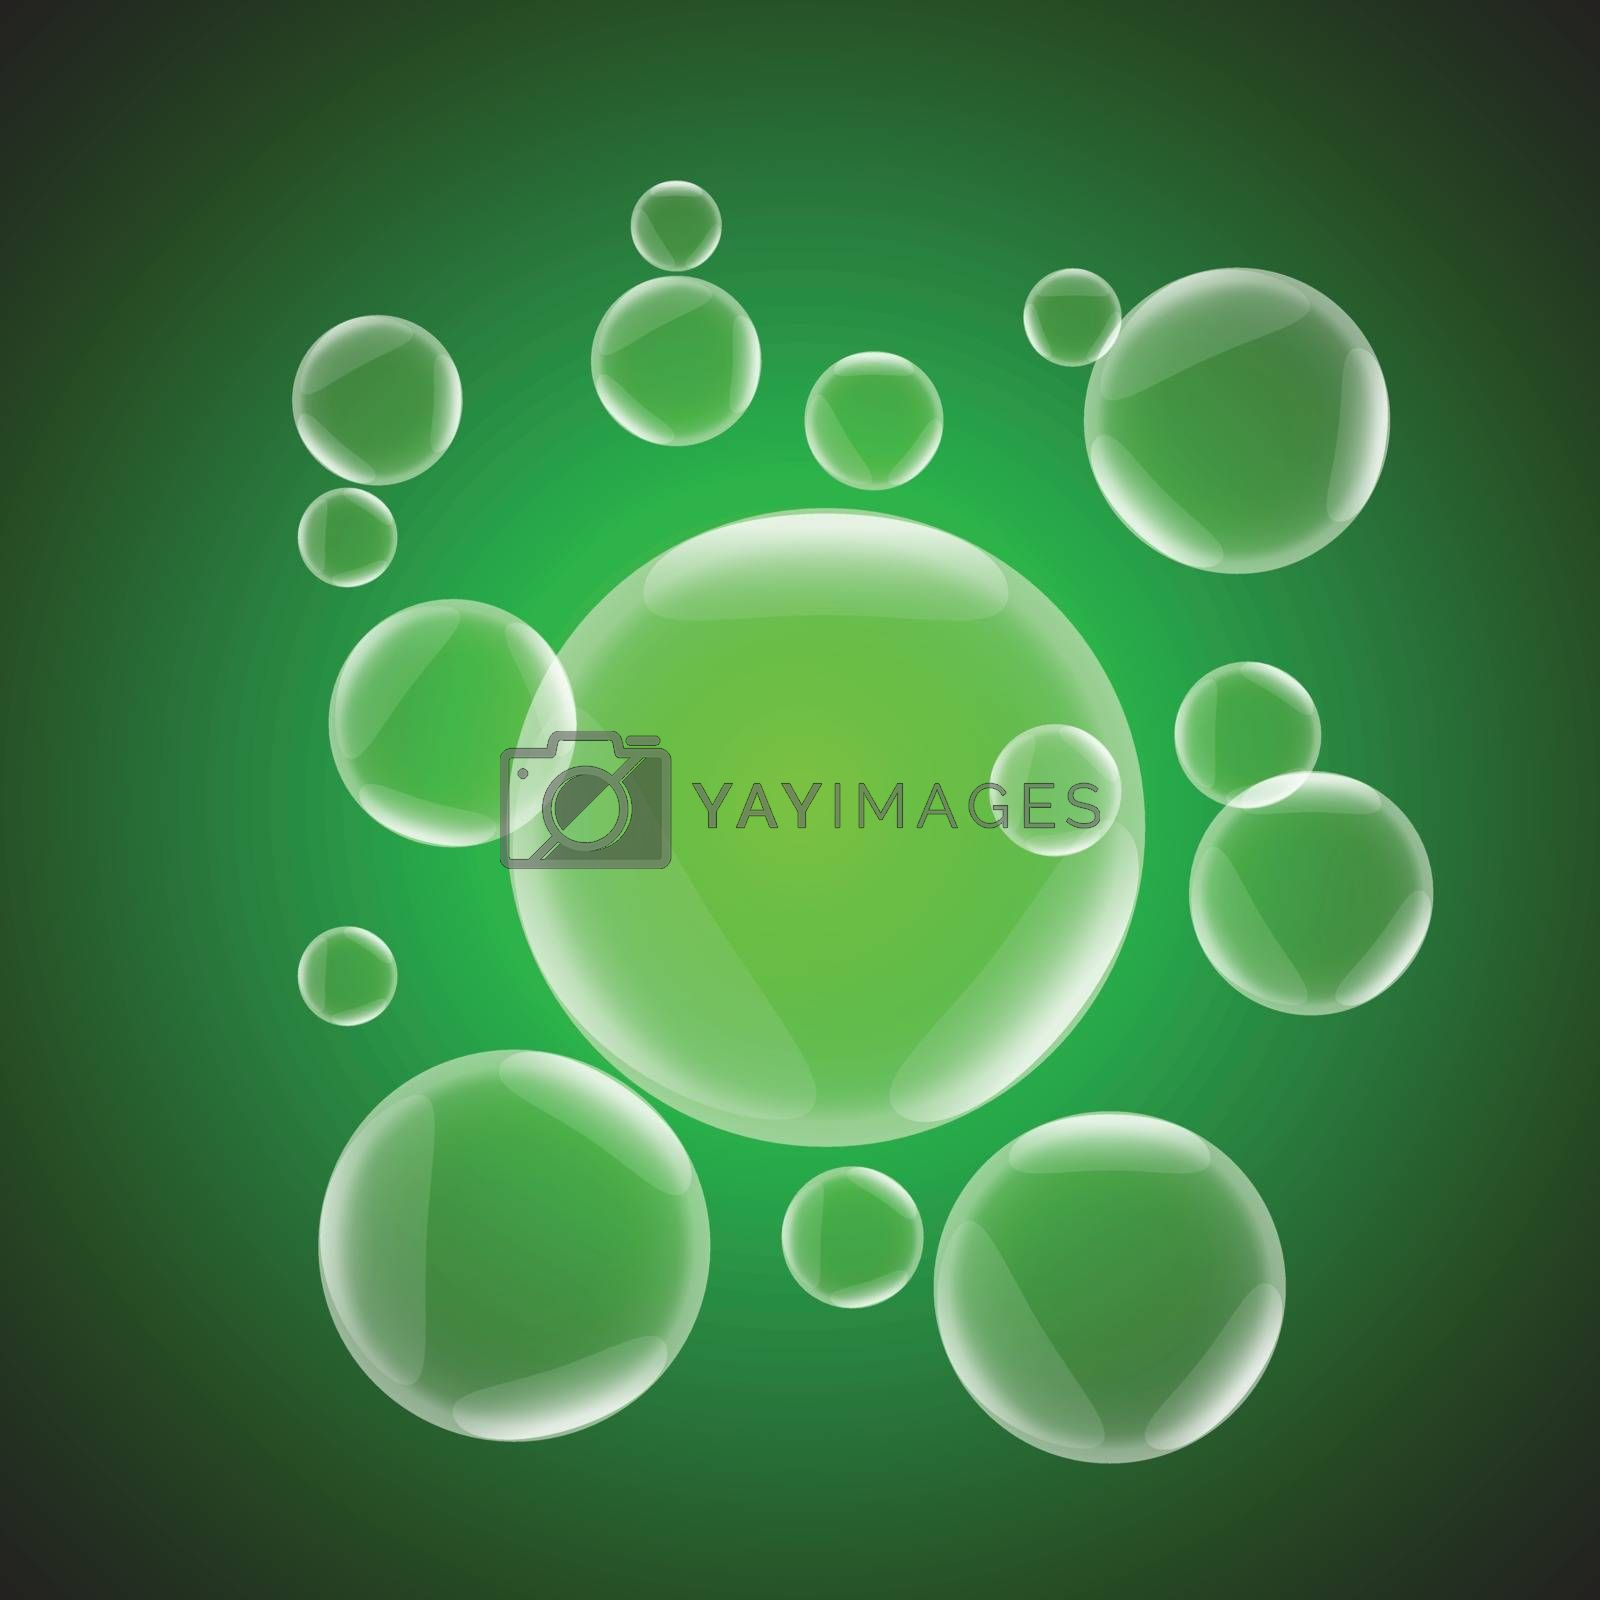 Abstract background with green glossy bubble, stock vector